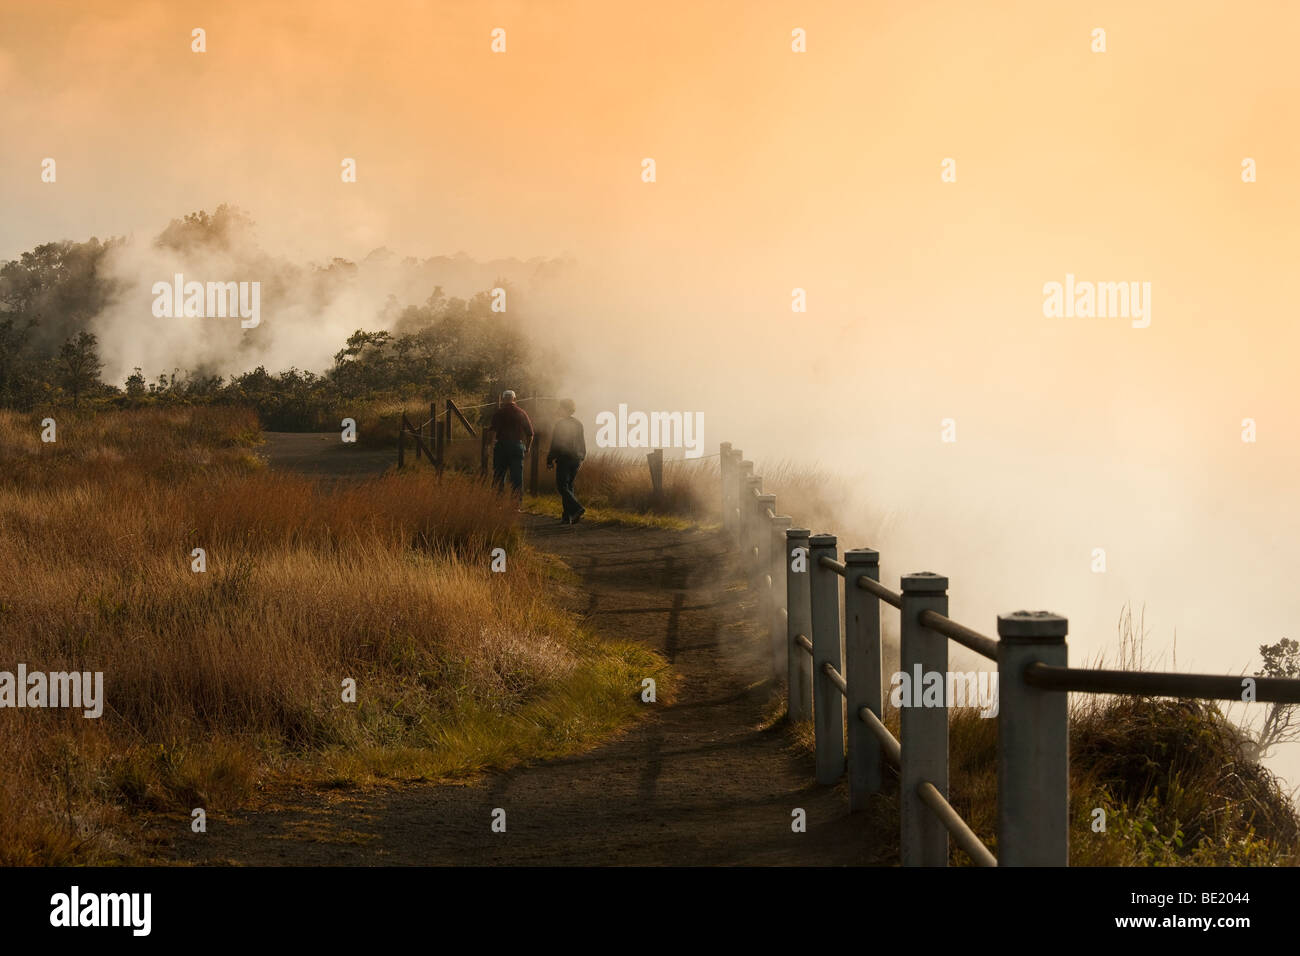 An unidentified couple walk past steam vents at Kilaueau Crater in Volcanoes National Park in Hawaii. - Stock Image